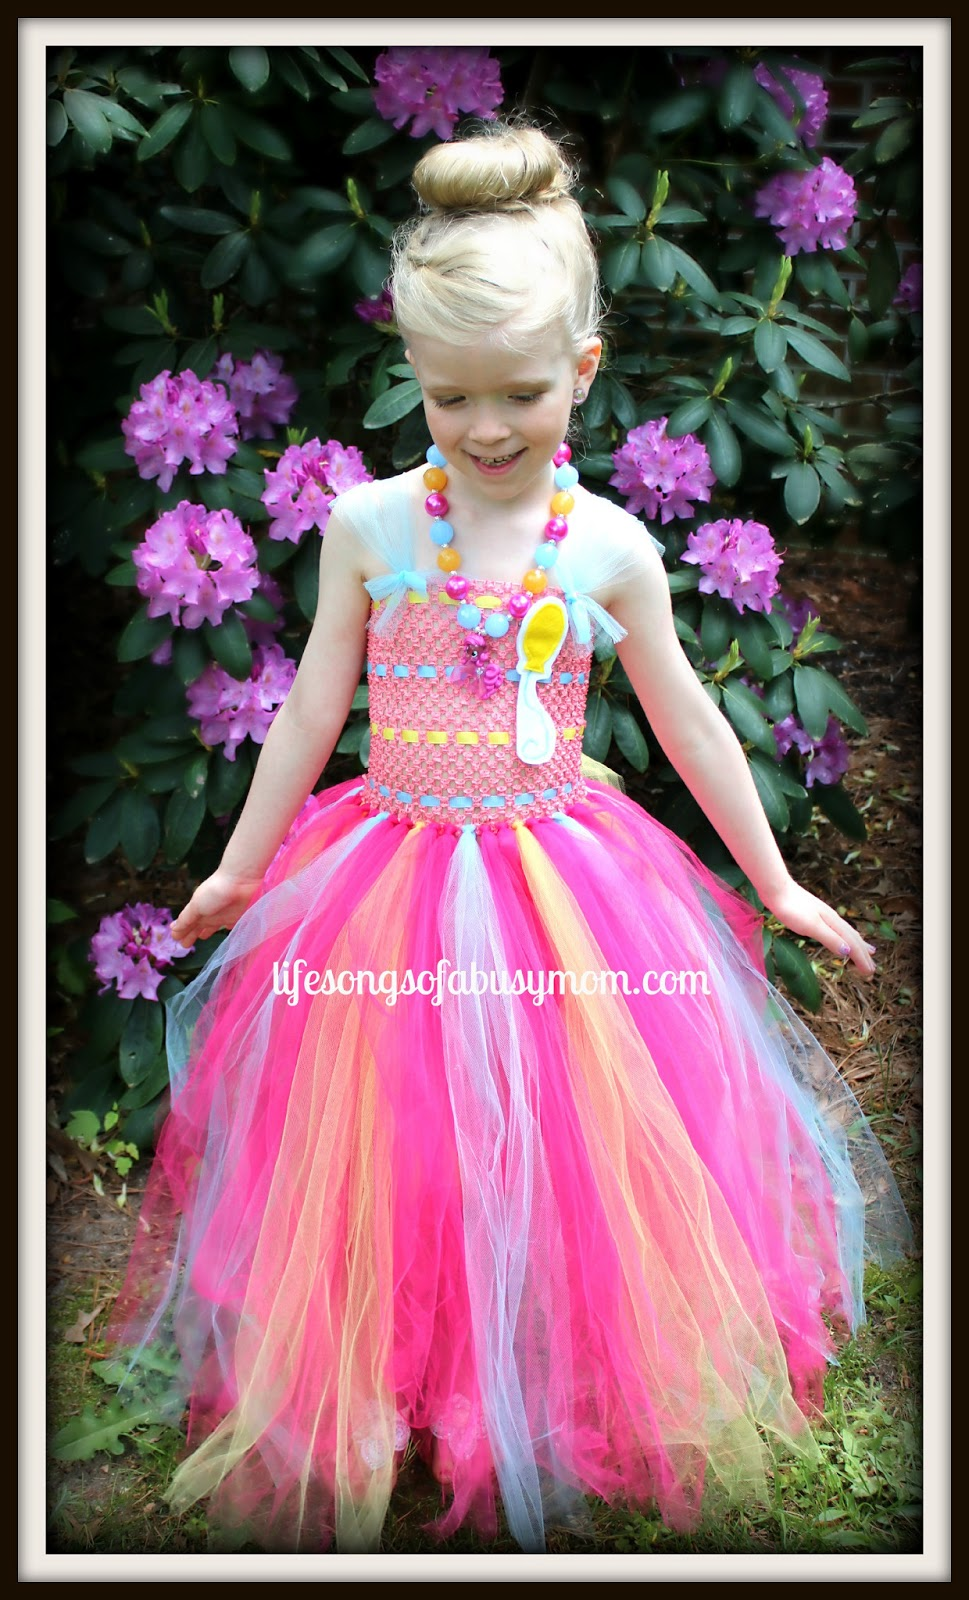 Kimberlyu0027s Creations Pinkie Pie Tutu Dress Review u0026 Giveaway  sc 1 st  Life Songs Of A Busy Mom & Life Songs Of A Busy Mom: Kimberlyu0027s Creations Pinkie Pie Tutu Dress ...